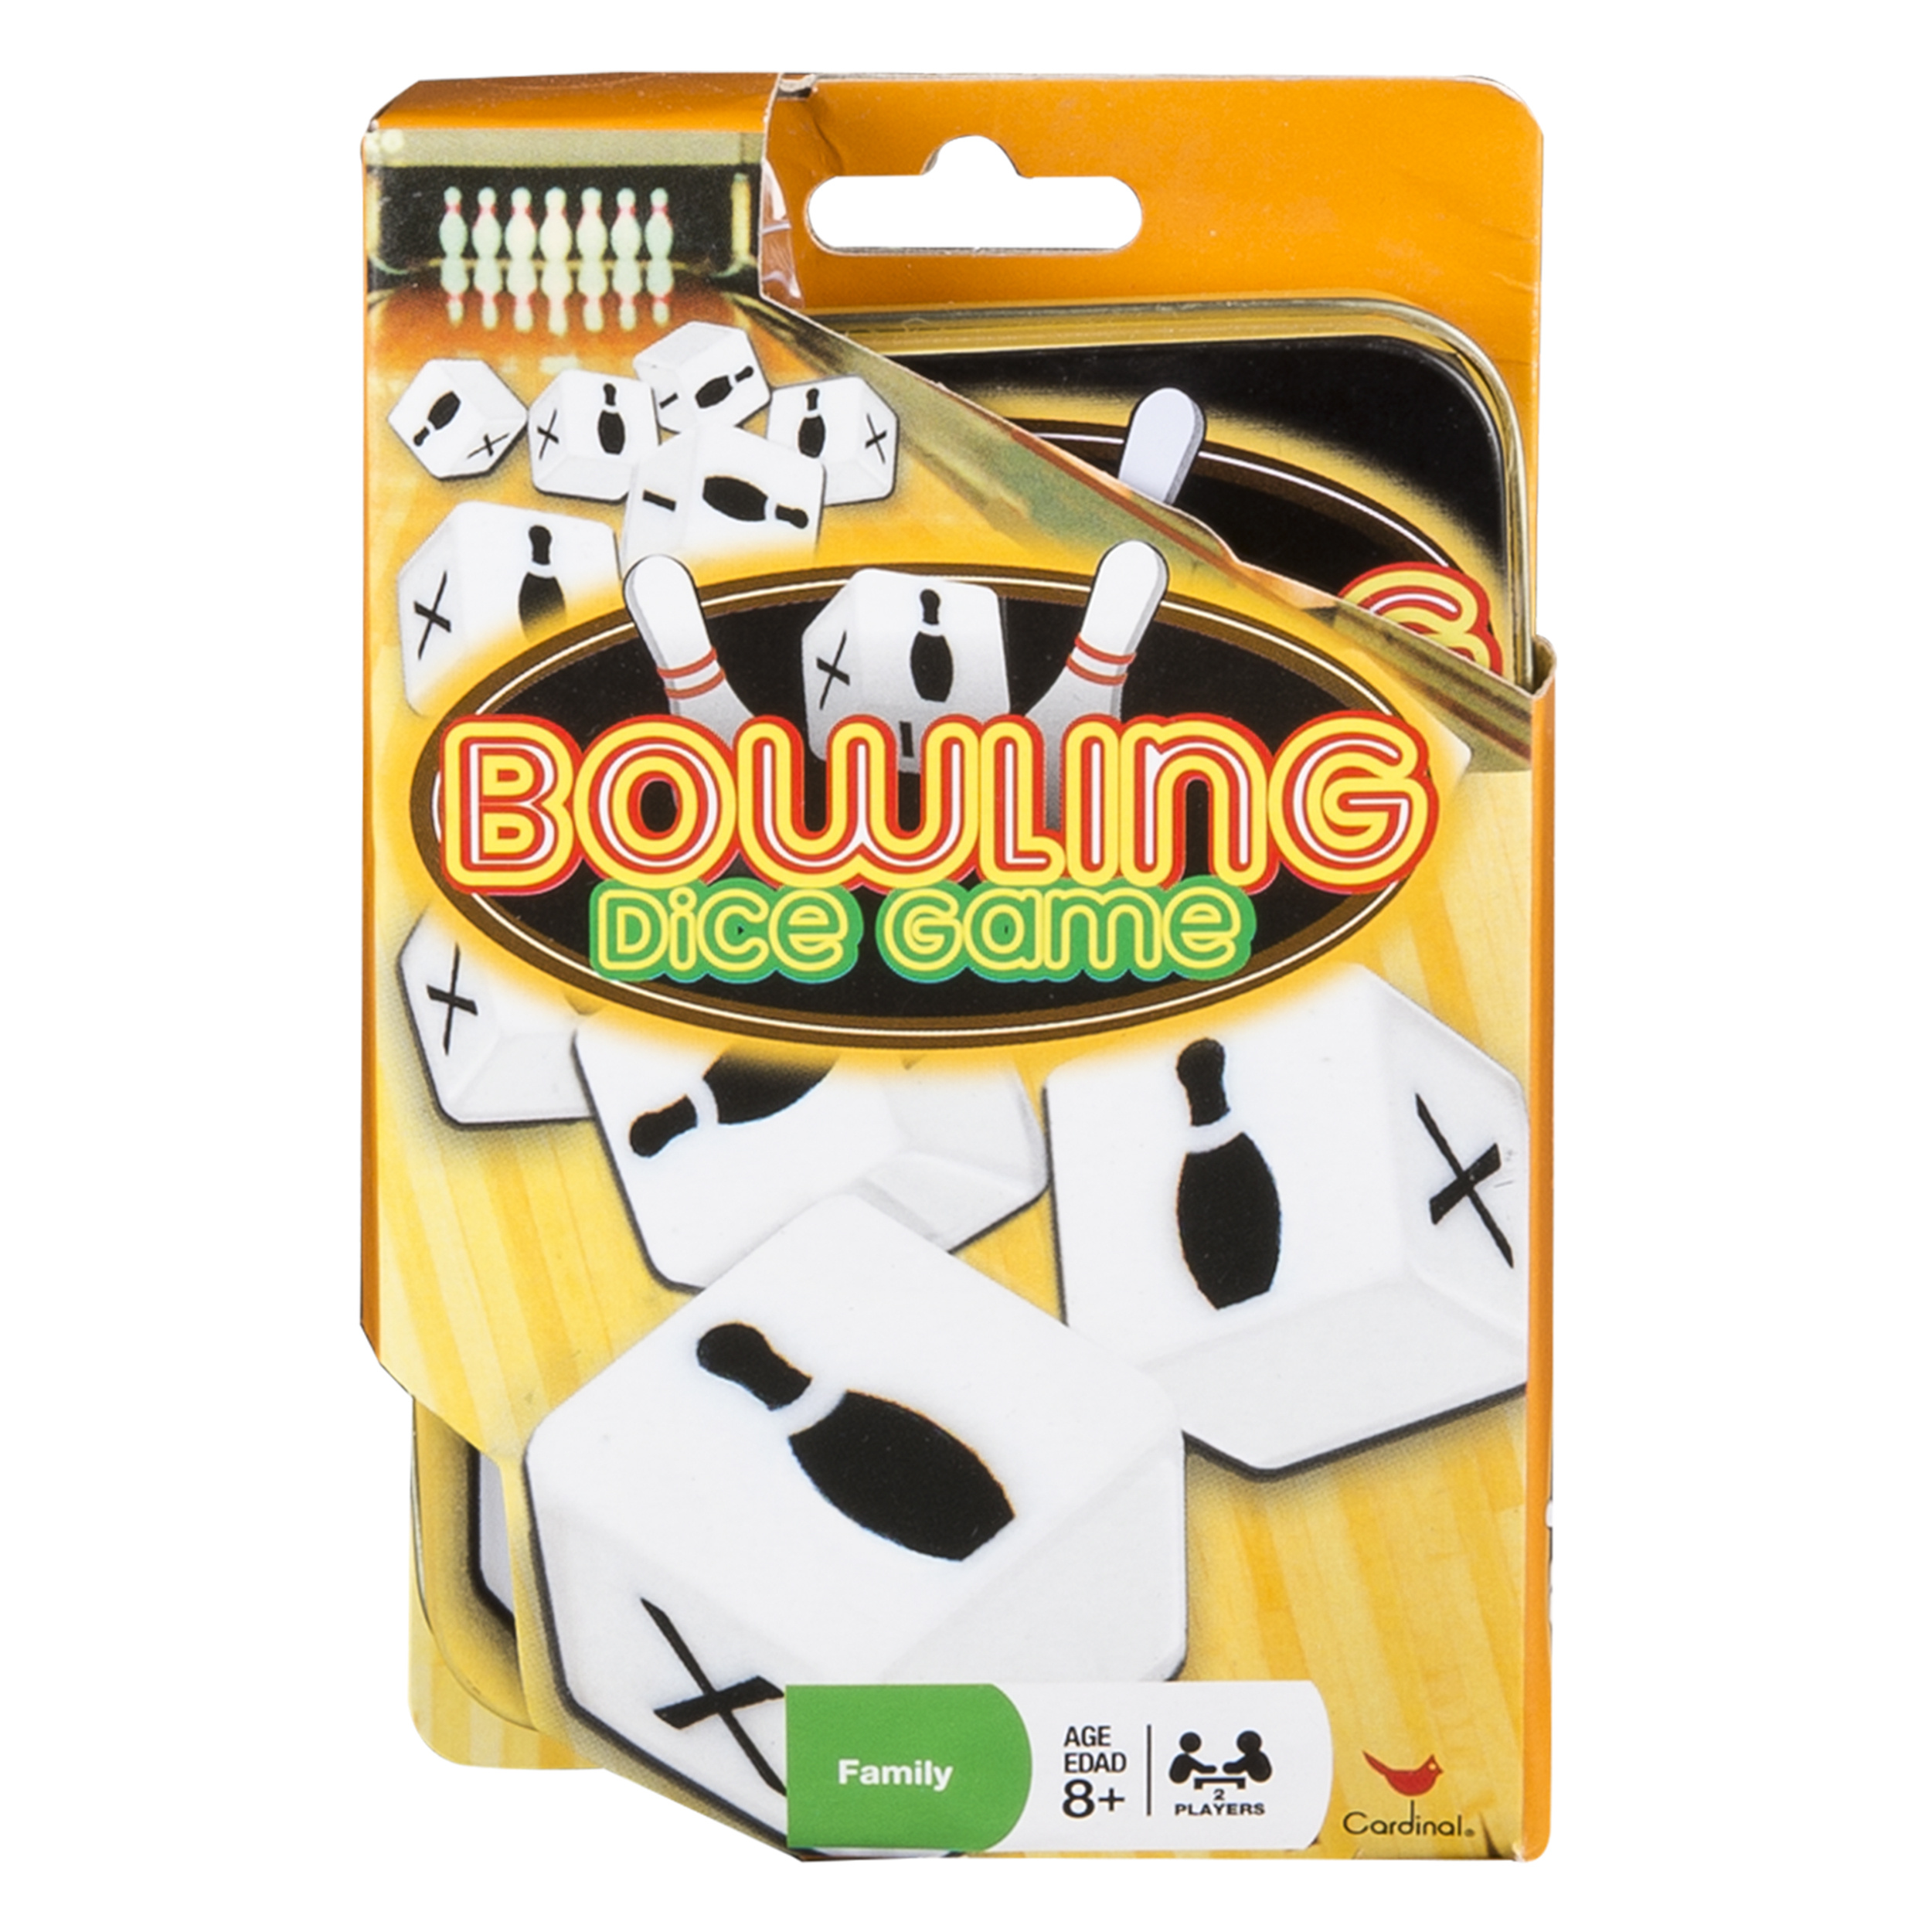 Bowling Dice Game in Storage Tin